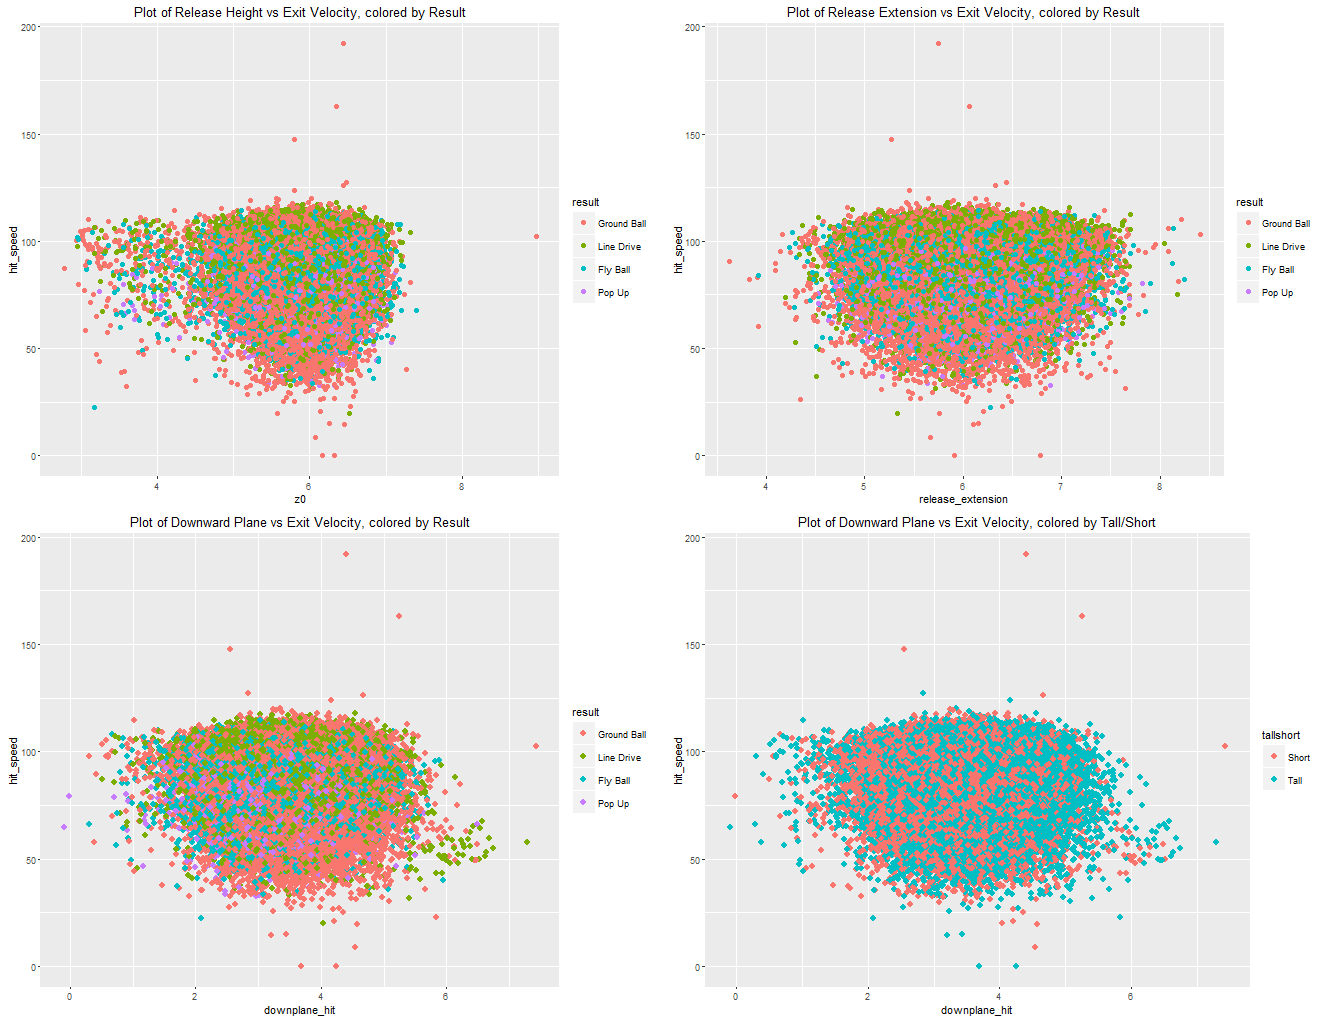 Figure 8: Exit Velocity Scatterplots, batted balls only